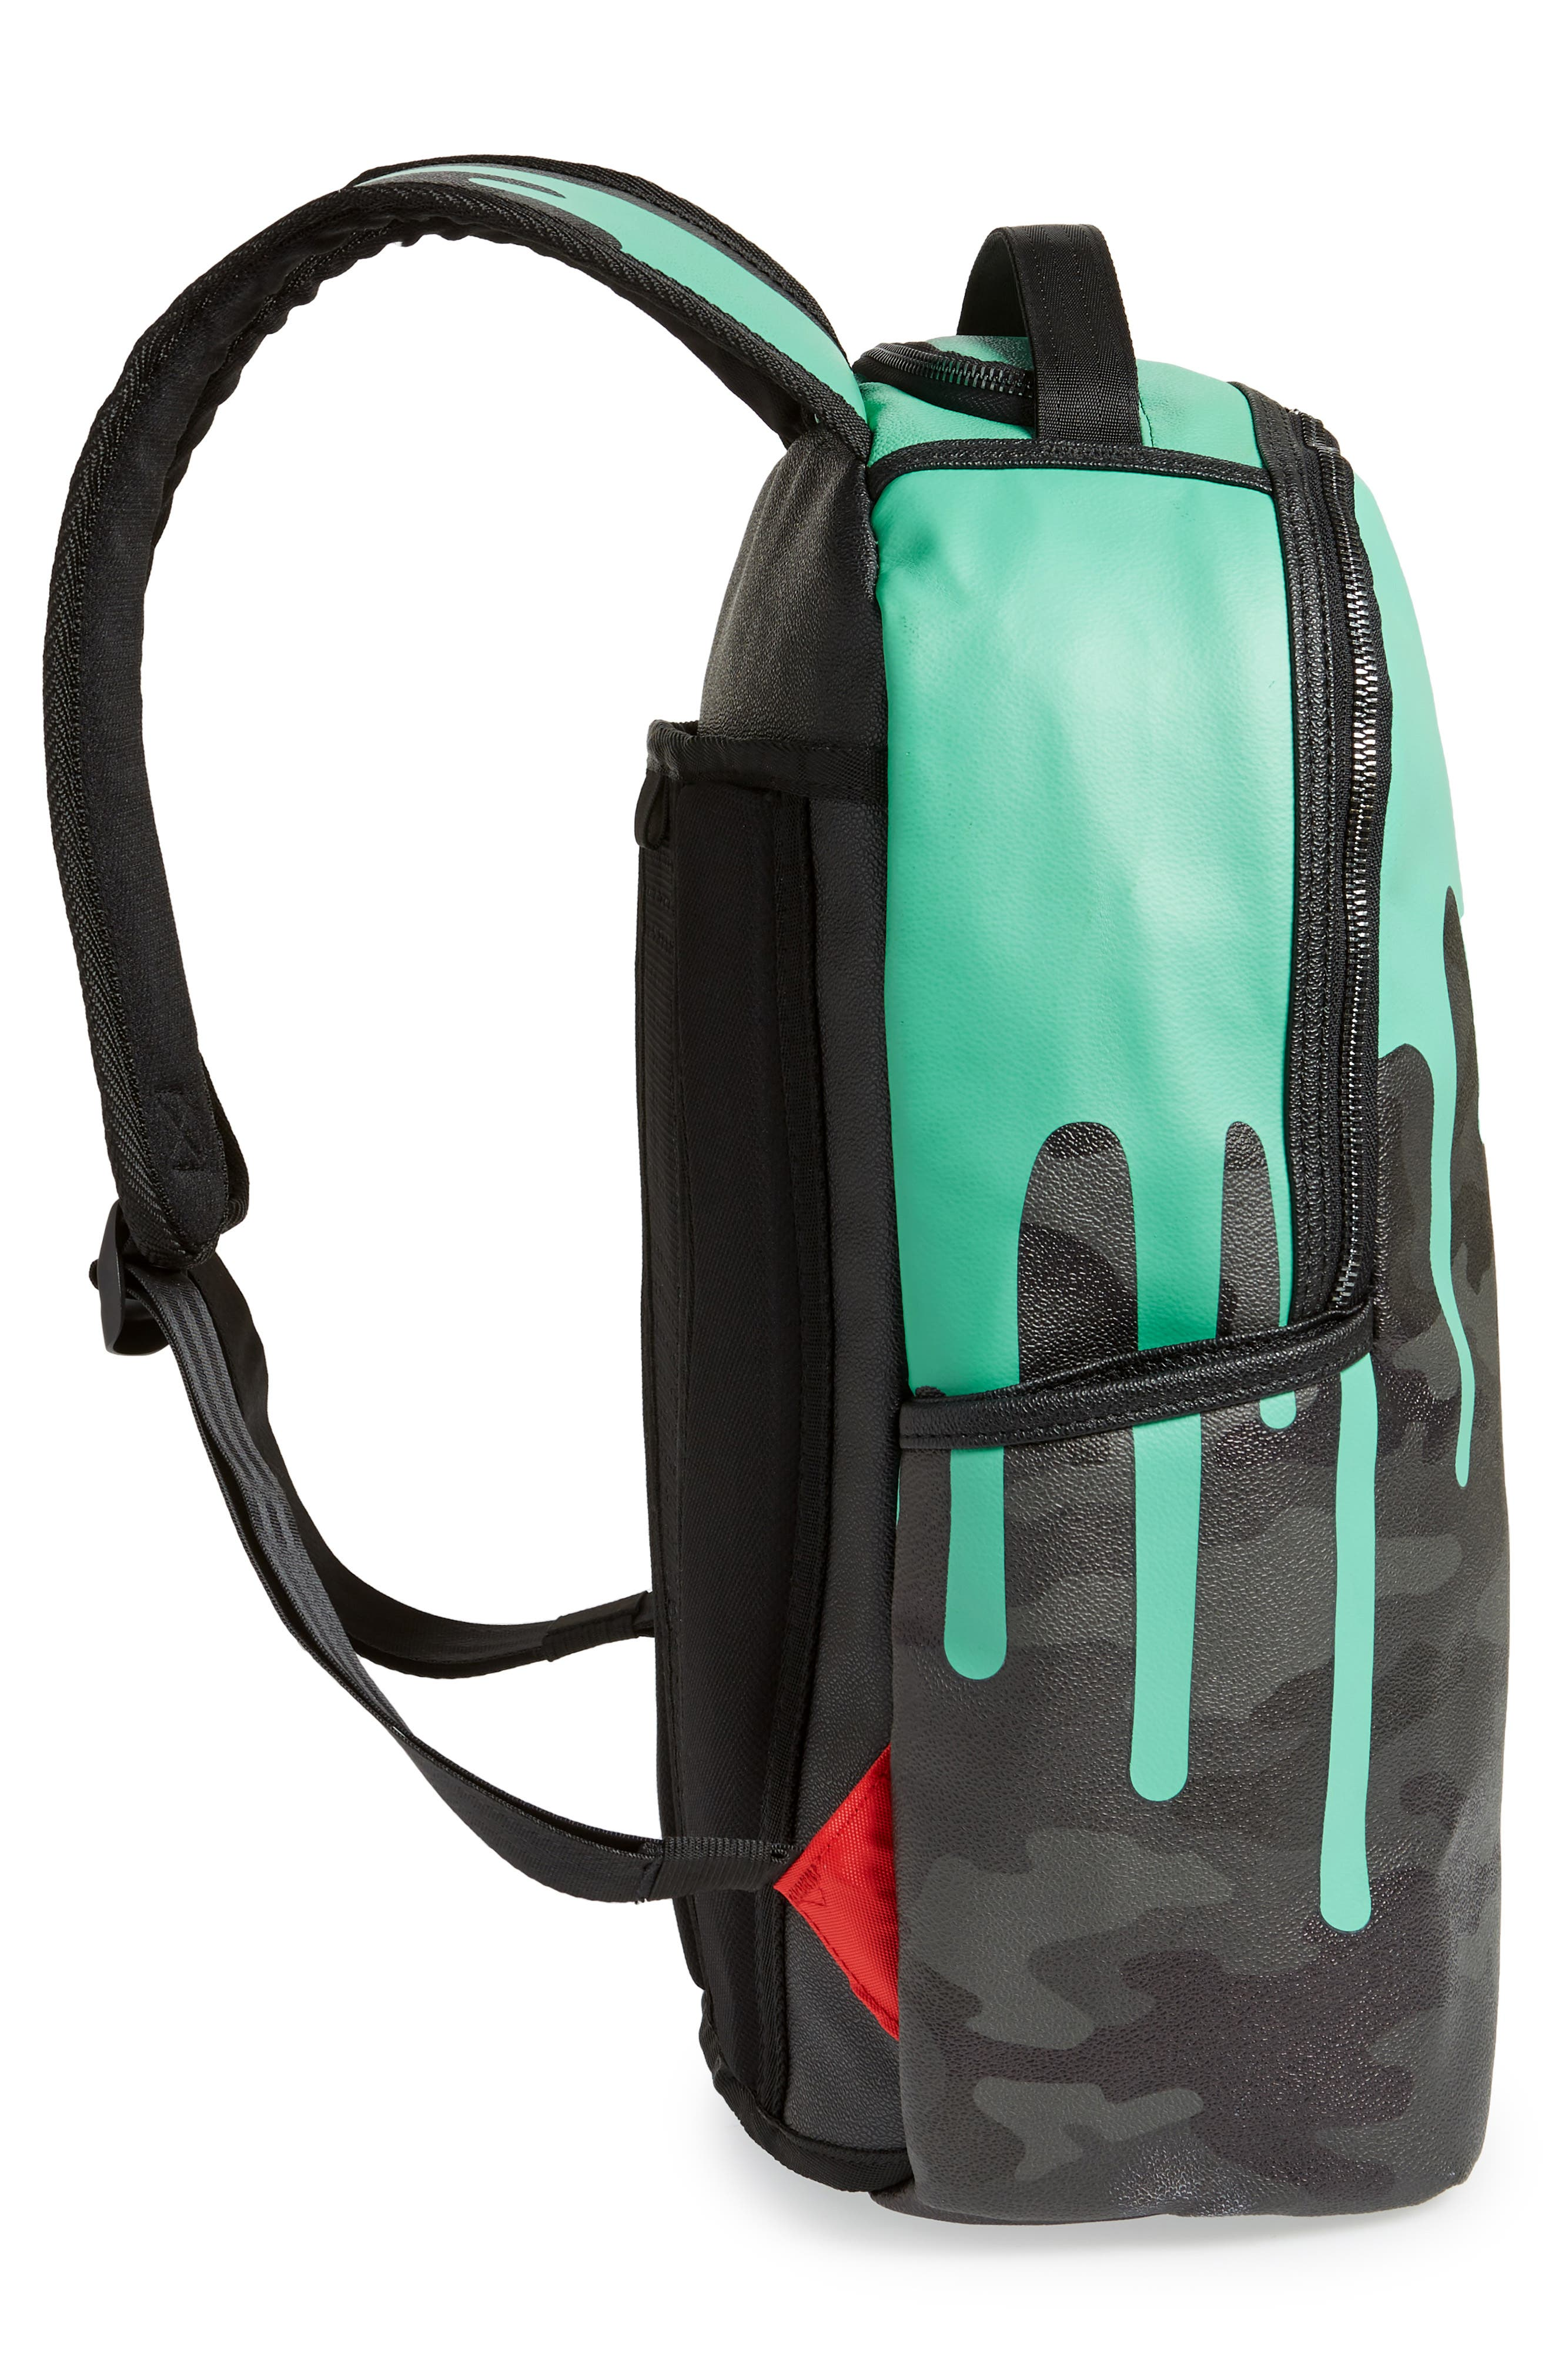 Tiff Drips Print Backpack,                             Alternate thumbnail 5, color,                             Camo/ Teal